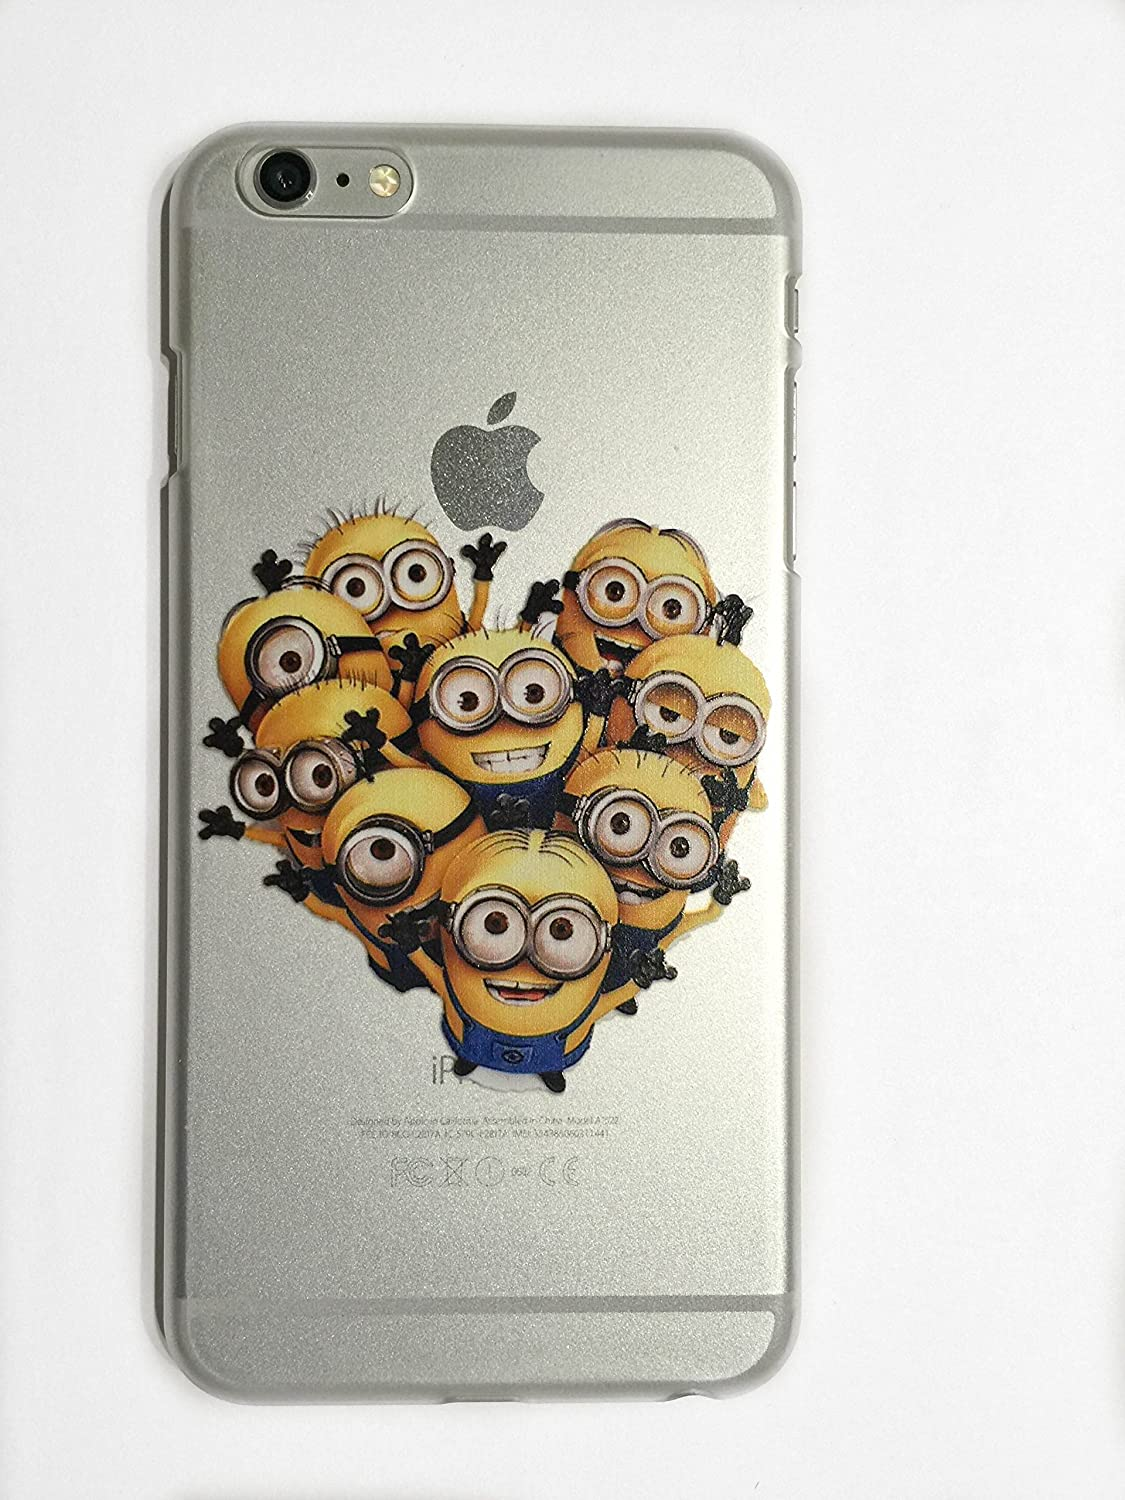 10b3bb943e 3. iphone 6 plus cases minions Review – 6/6s Plus (5.5) Group of Minions  Case Compatible with iPhone 6/6s Plus